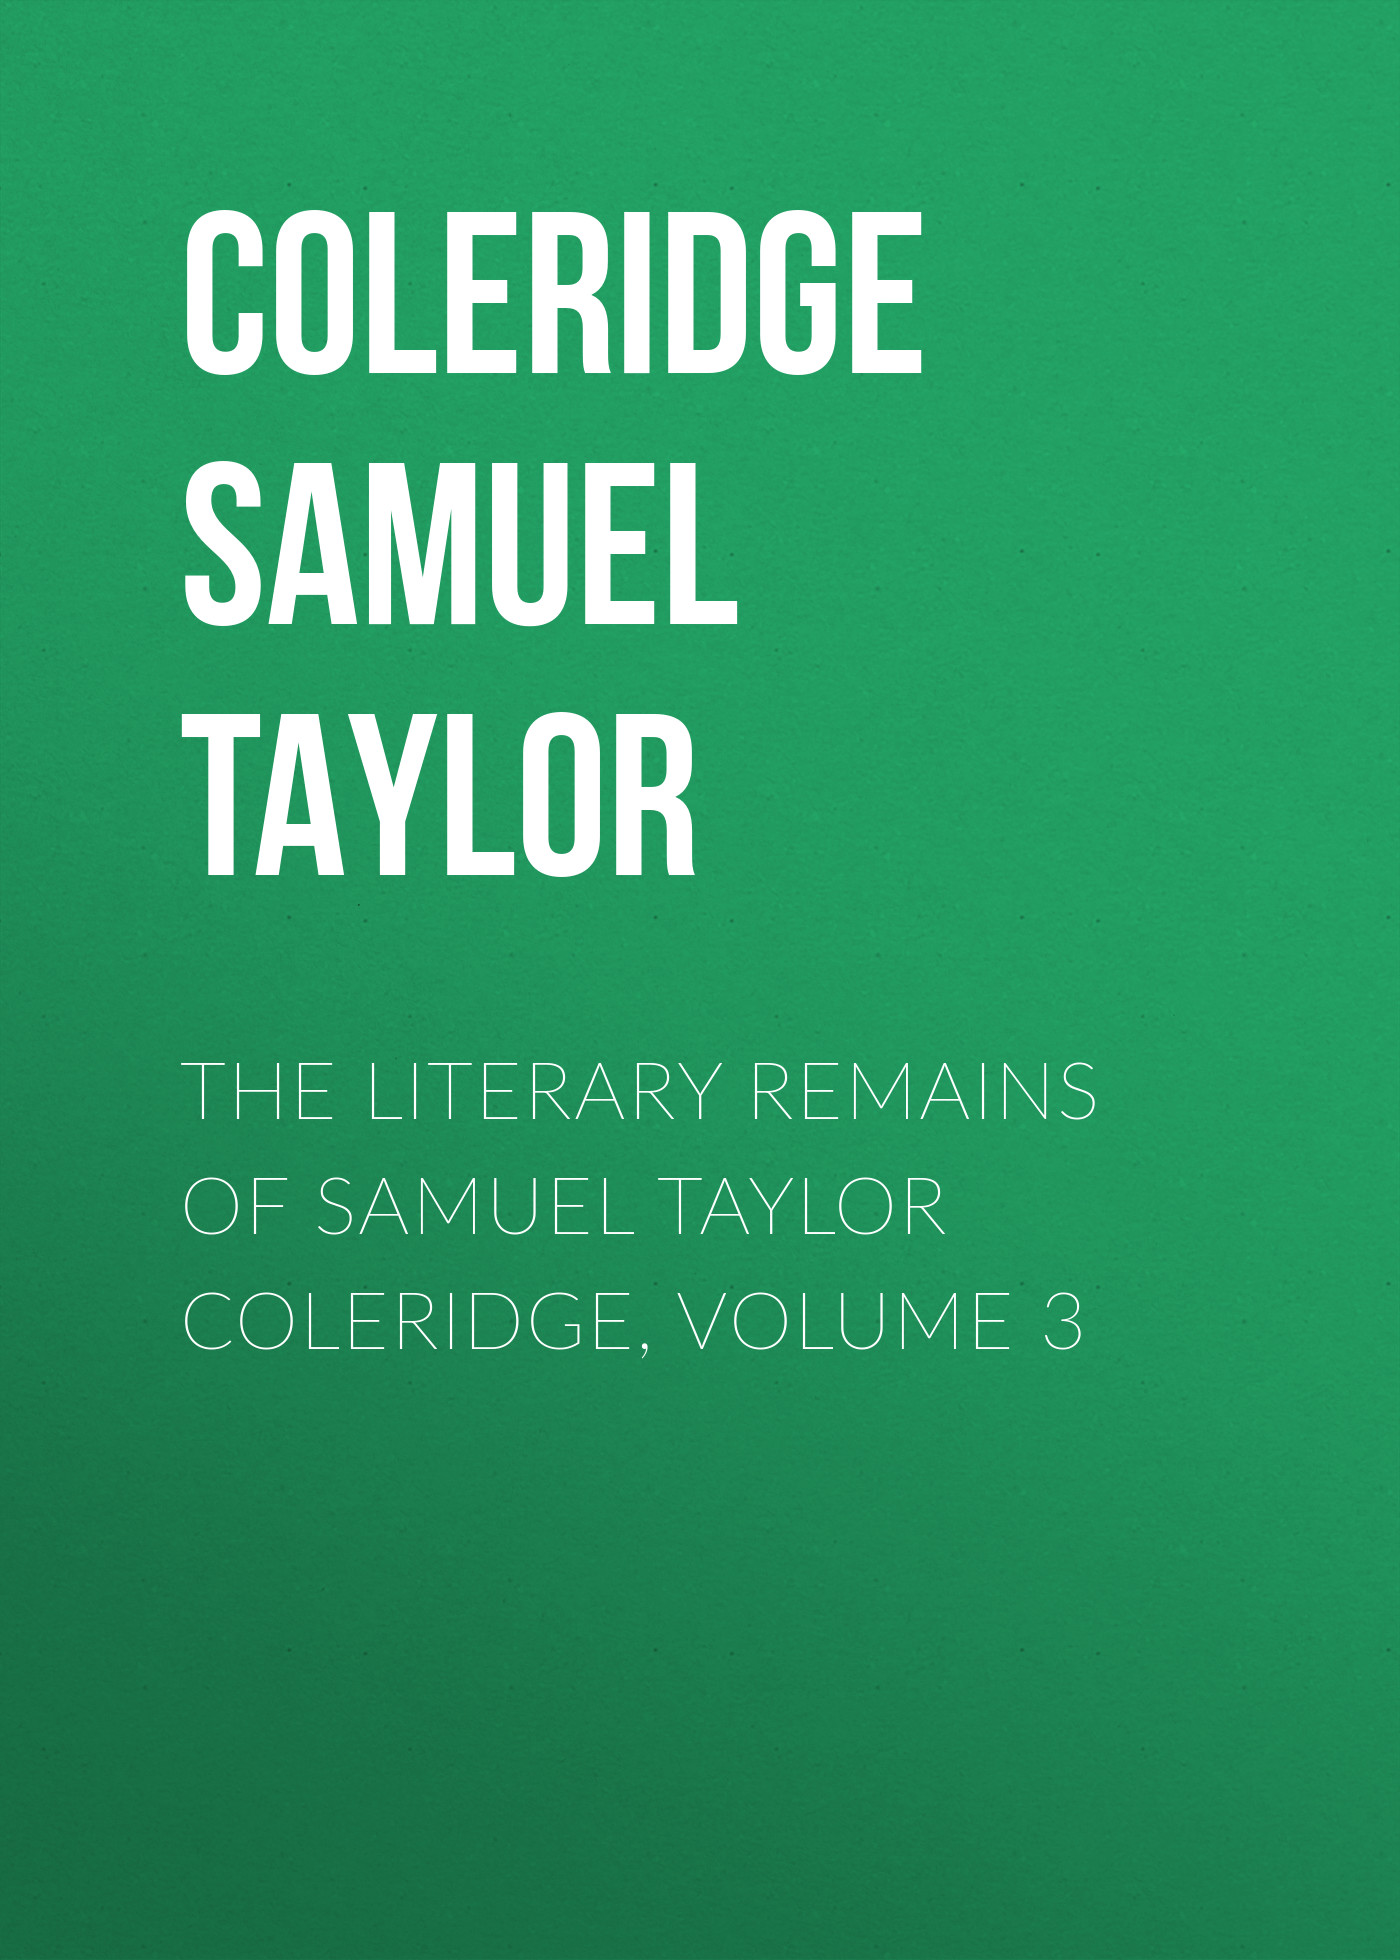 Coleridge Samuel Taylor The Literary Remains of Samuel Taylor Coleridge, Volume 3 joanne shaw taylor joanne shaw taylor the dirty truth